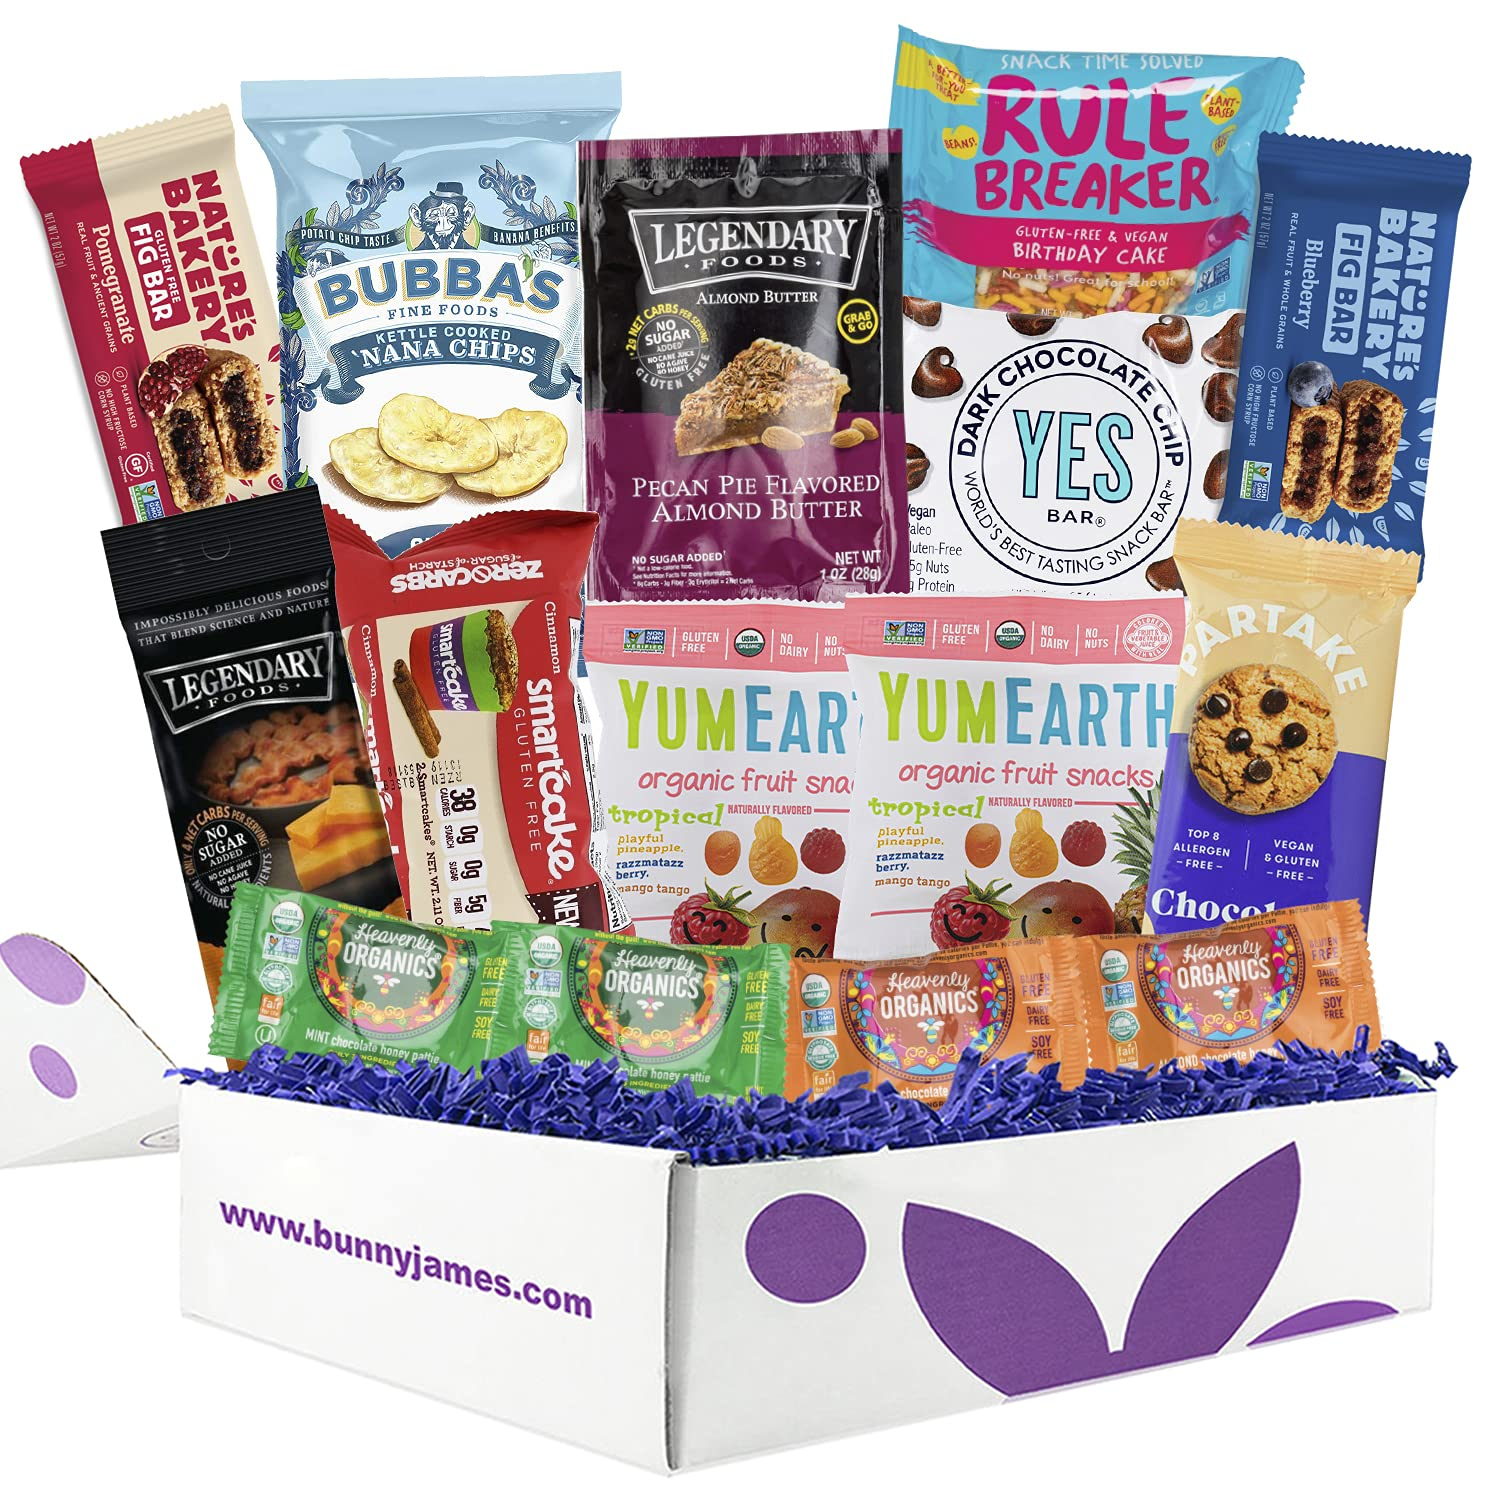 Gluten Free Snack Care Package: Gluten Free Box Contains a Variety of Healthy Sweet & Savory Gluten Free Chips, Chocolates, and Nuts.